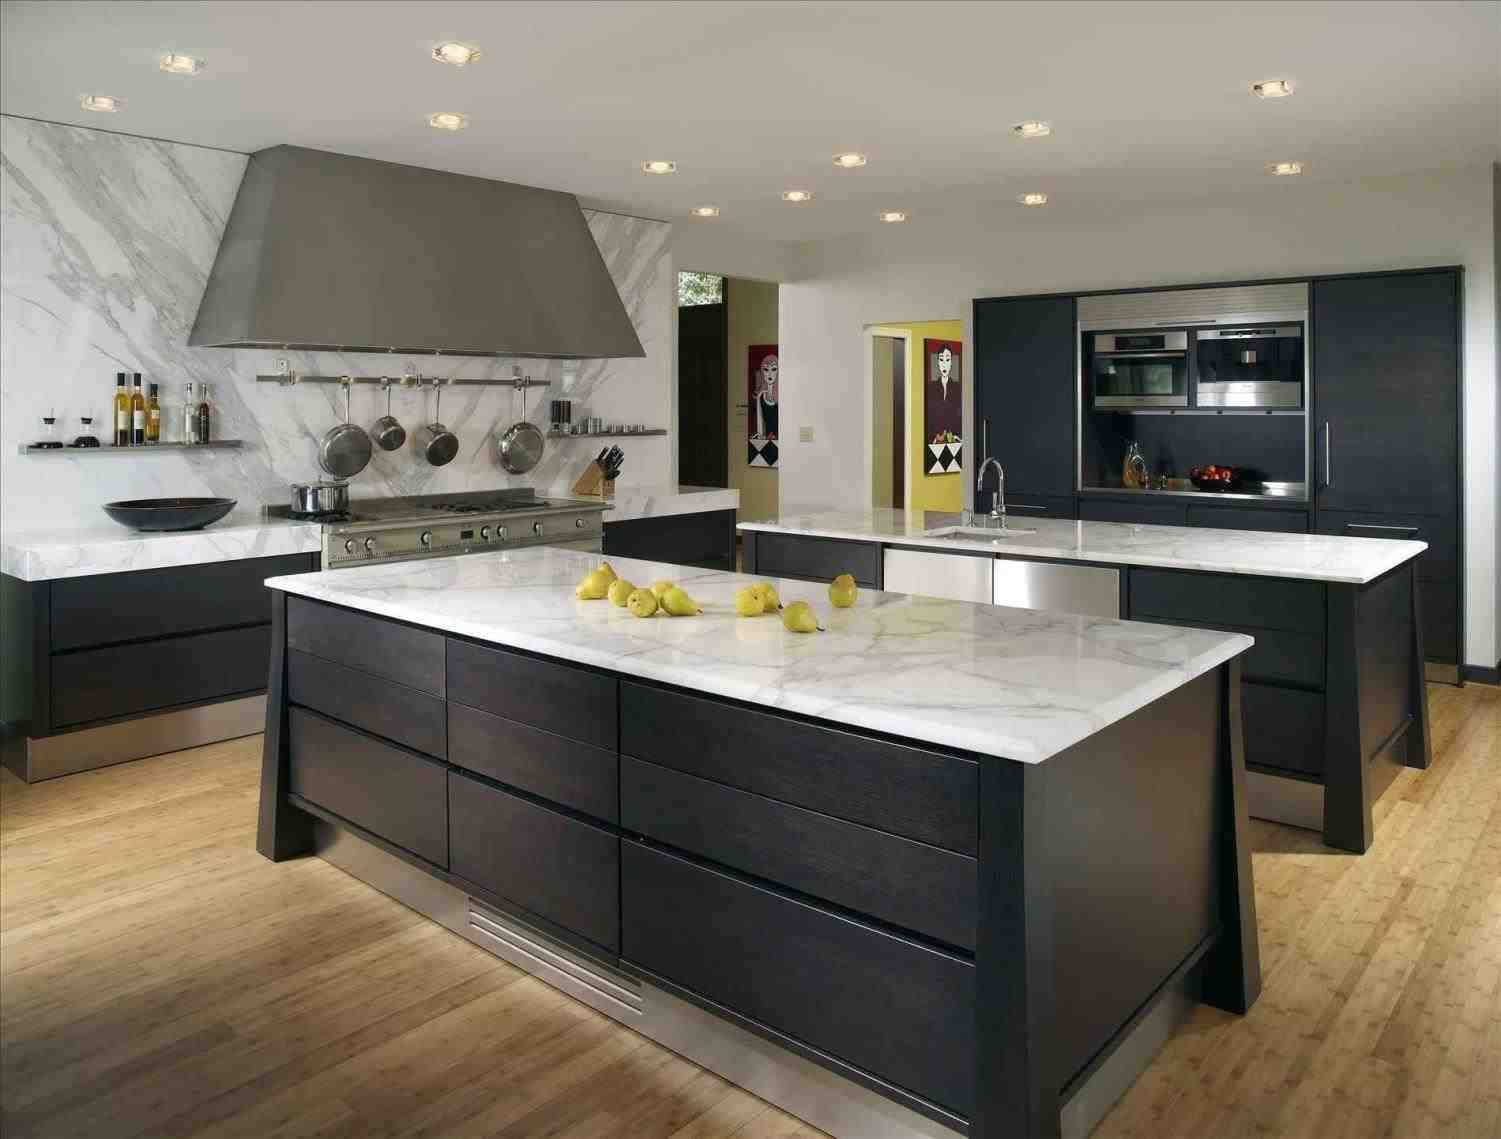 Ideas for kitchen decor  New Post kitchen cabinets without handles  Decors Ideas  Pinterest